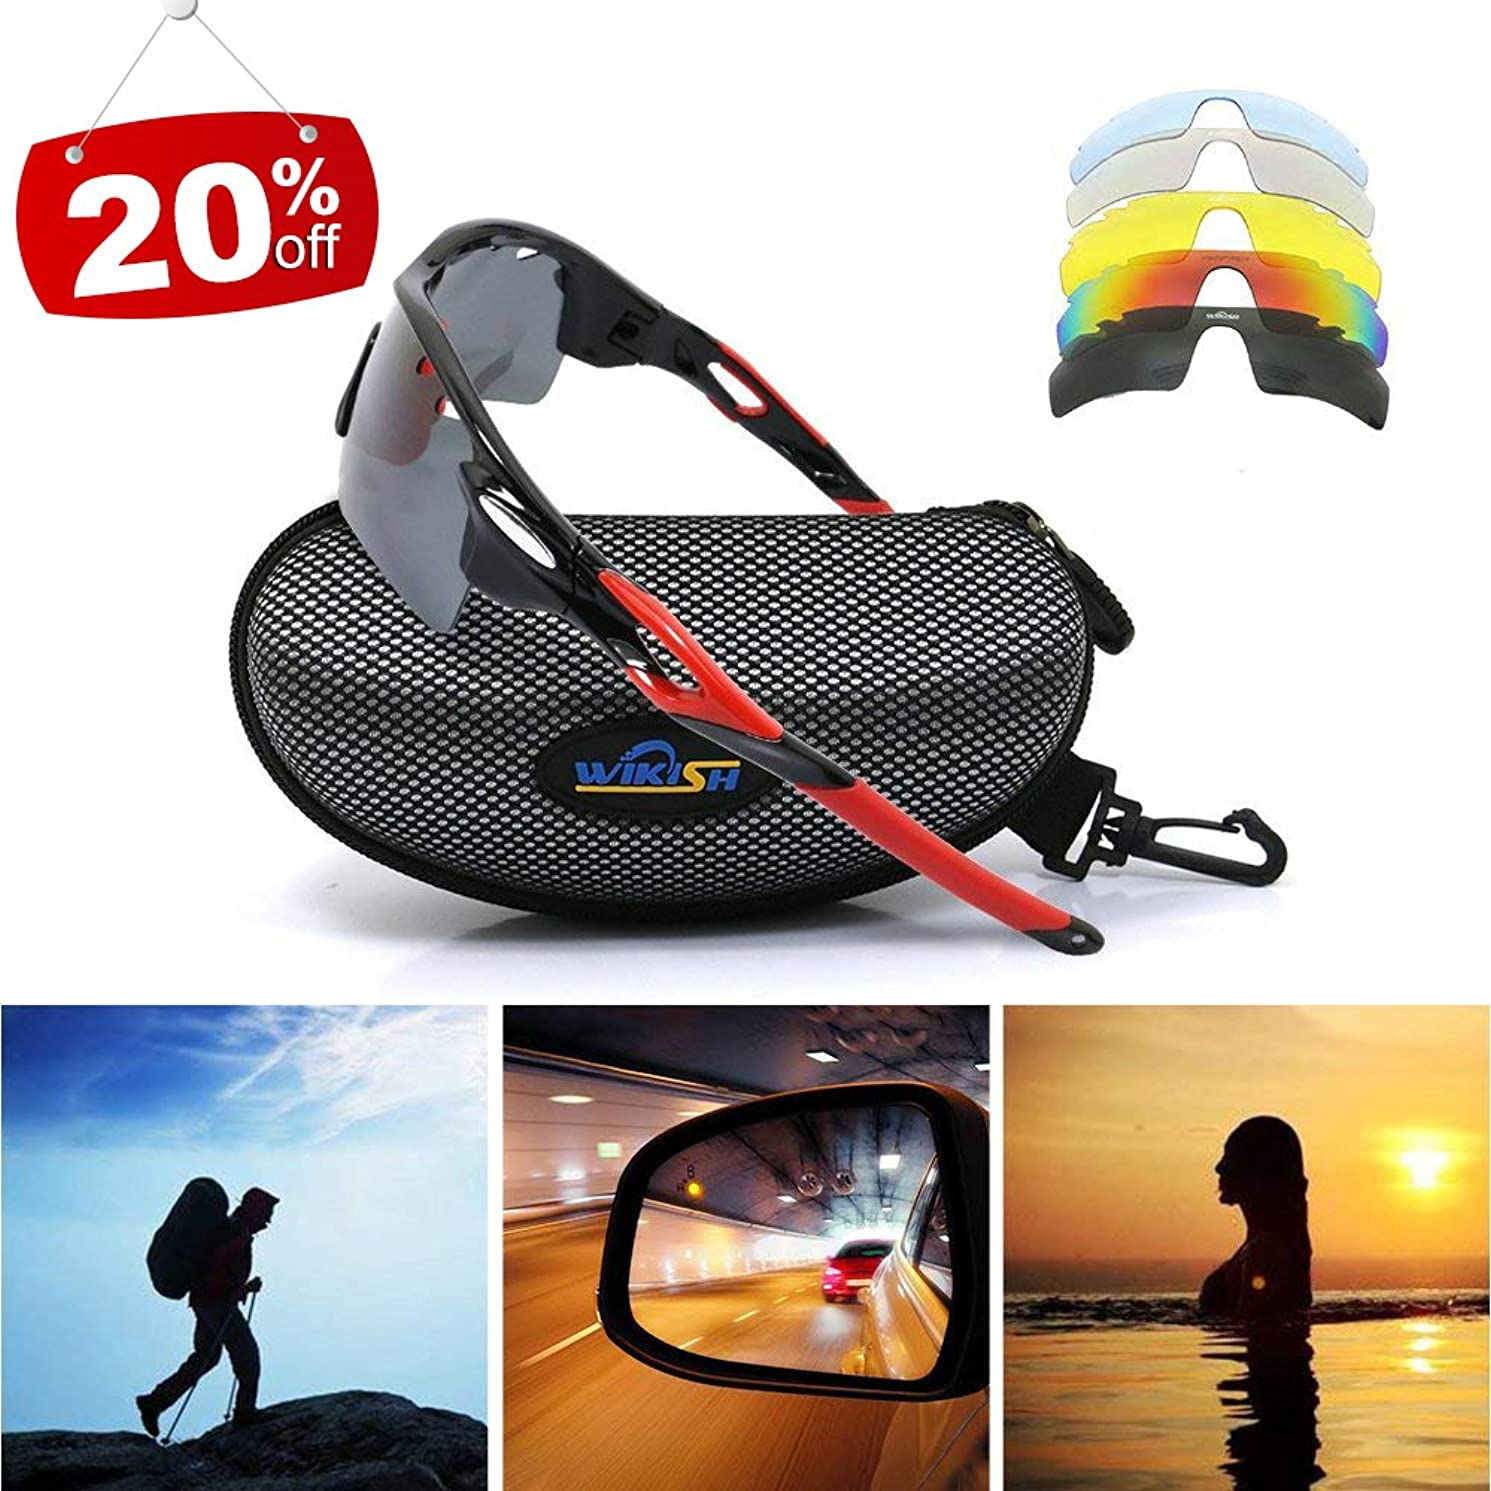 Men Sunglasses Polarized UV Protection Anti-fog for Jogging Cycling Baseball Running Fishing Driving Biker Outdoor Sports